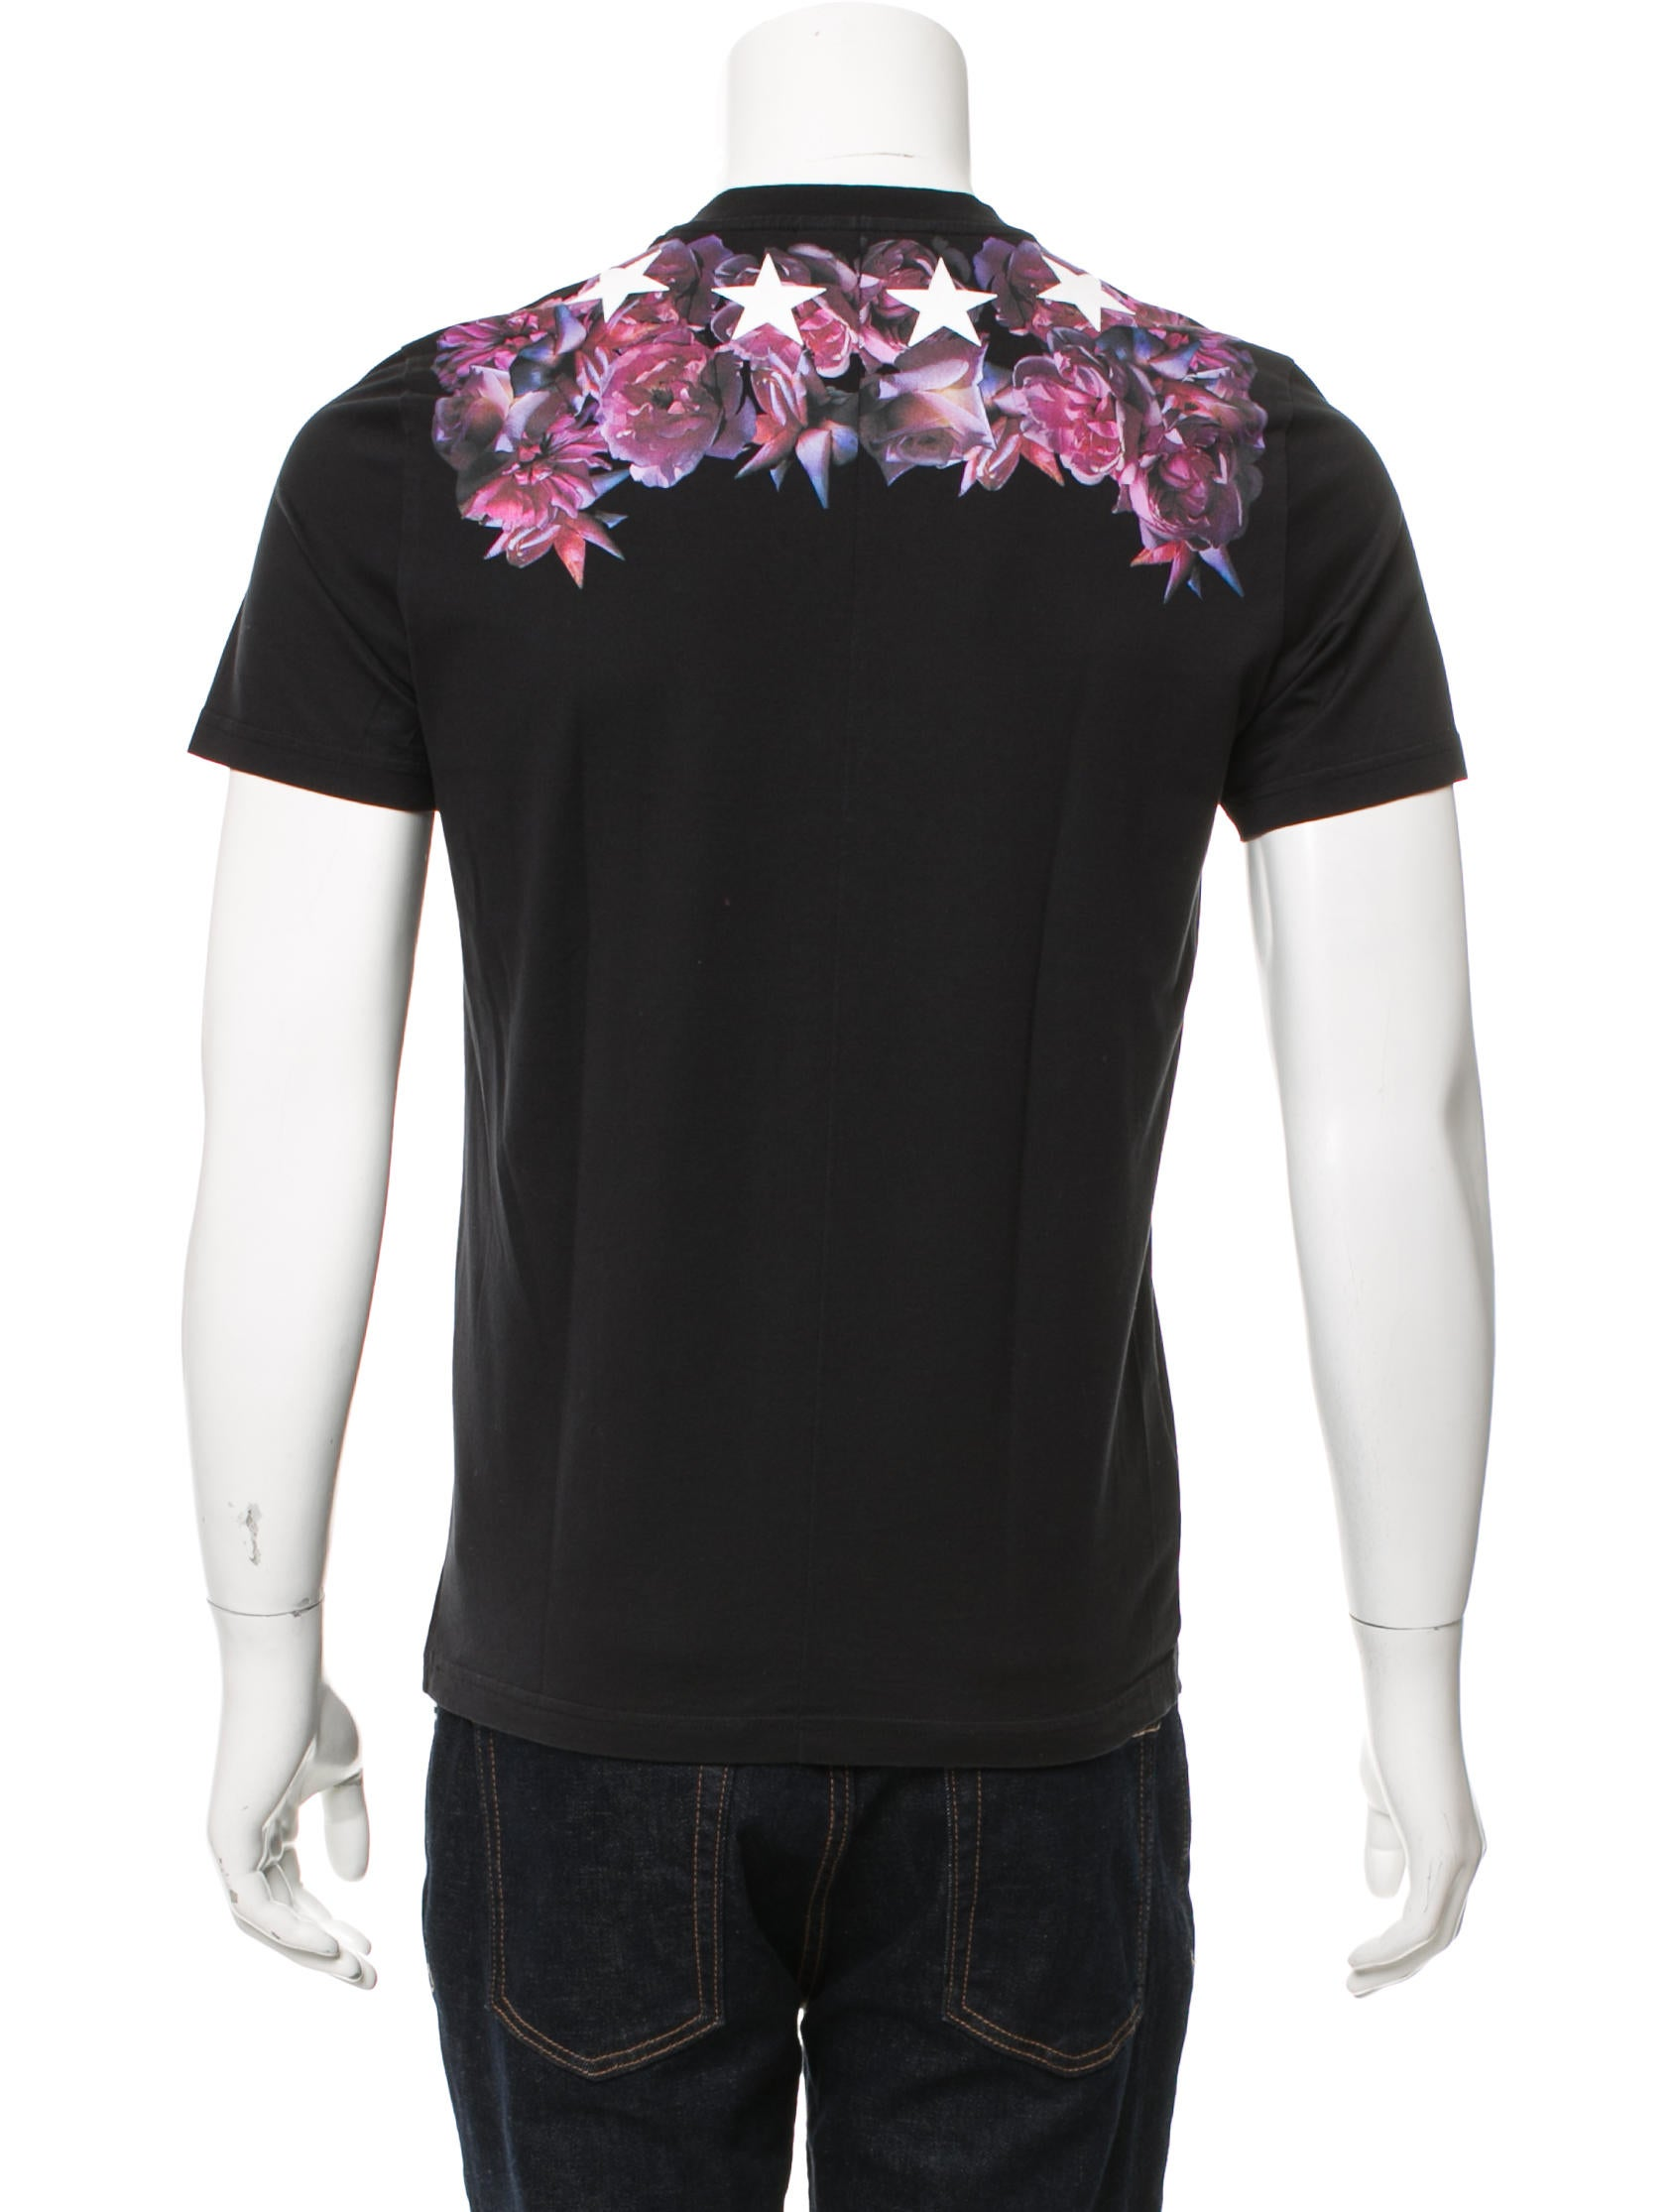 Givenchy roses stars print t shirt clothing giv46213 Givenchy t shirt price